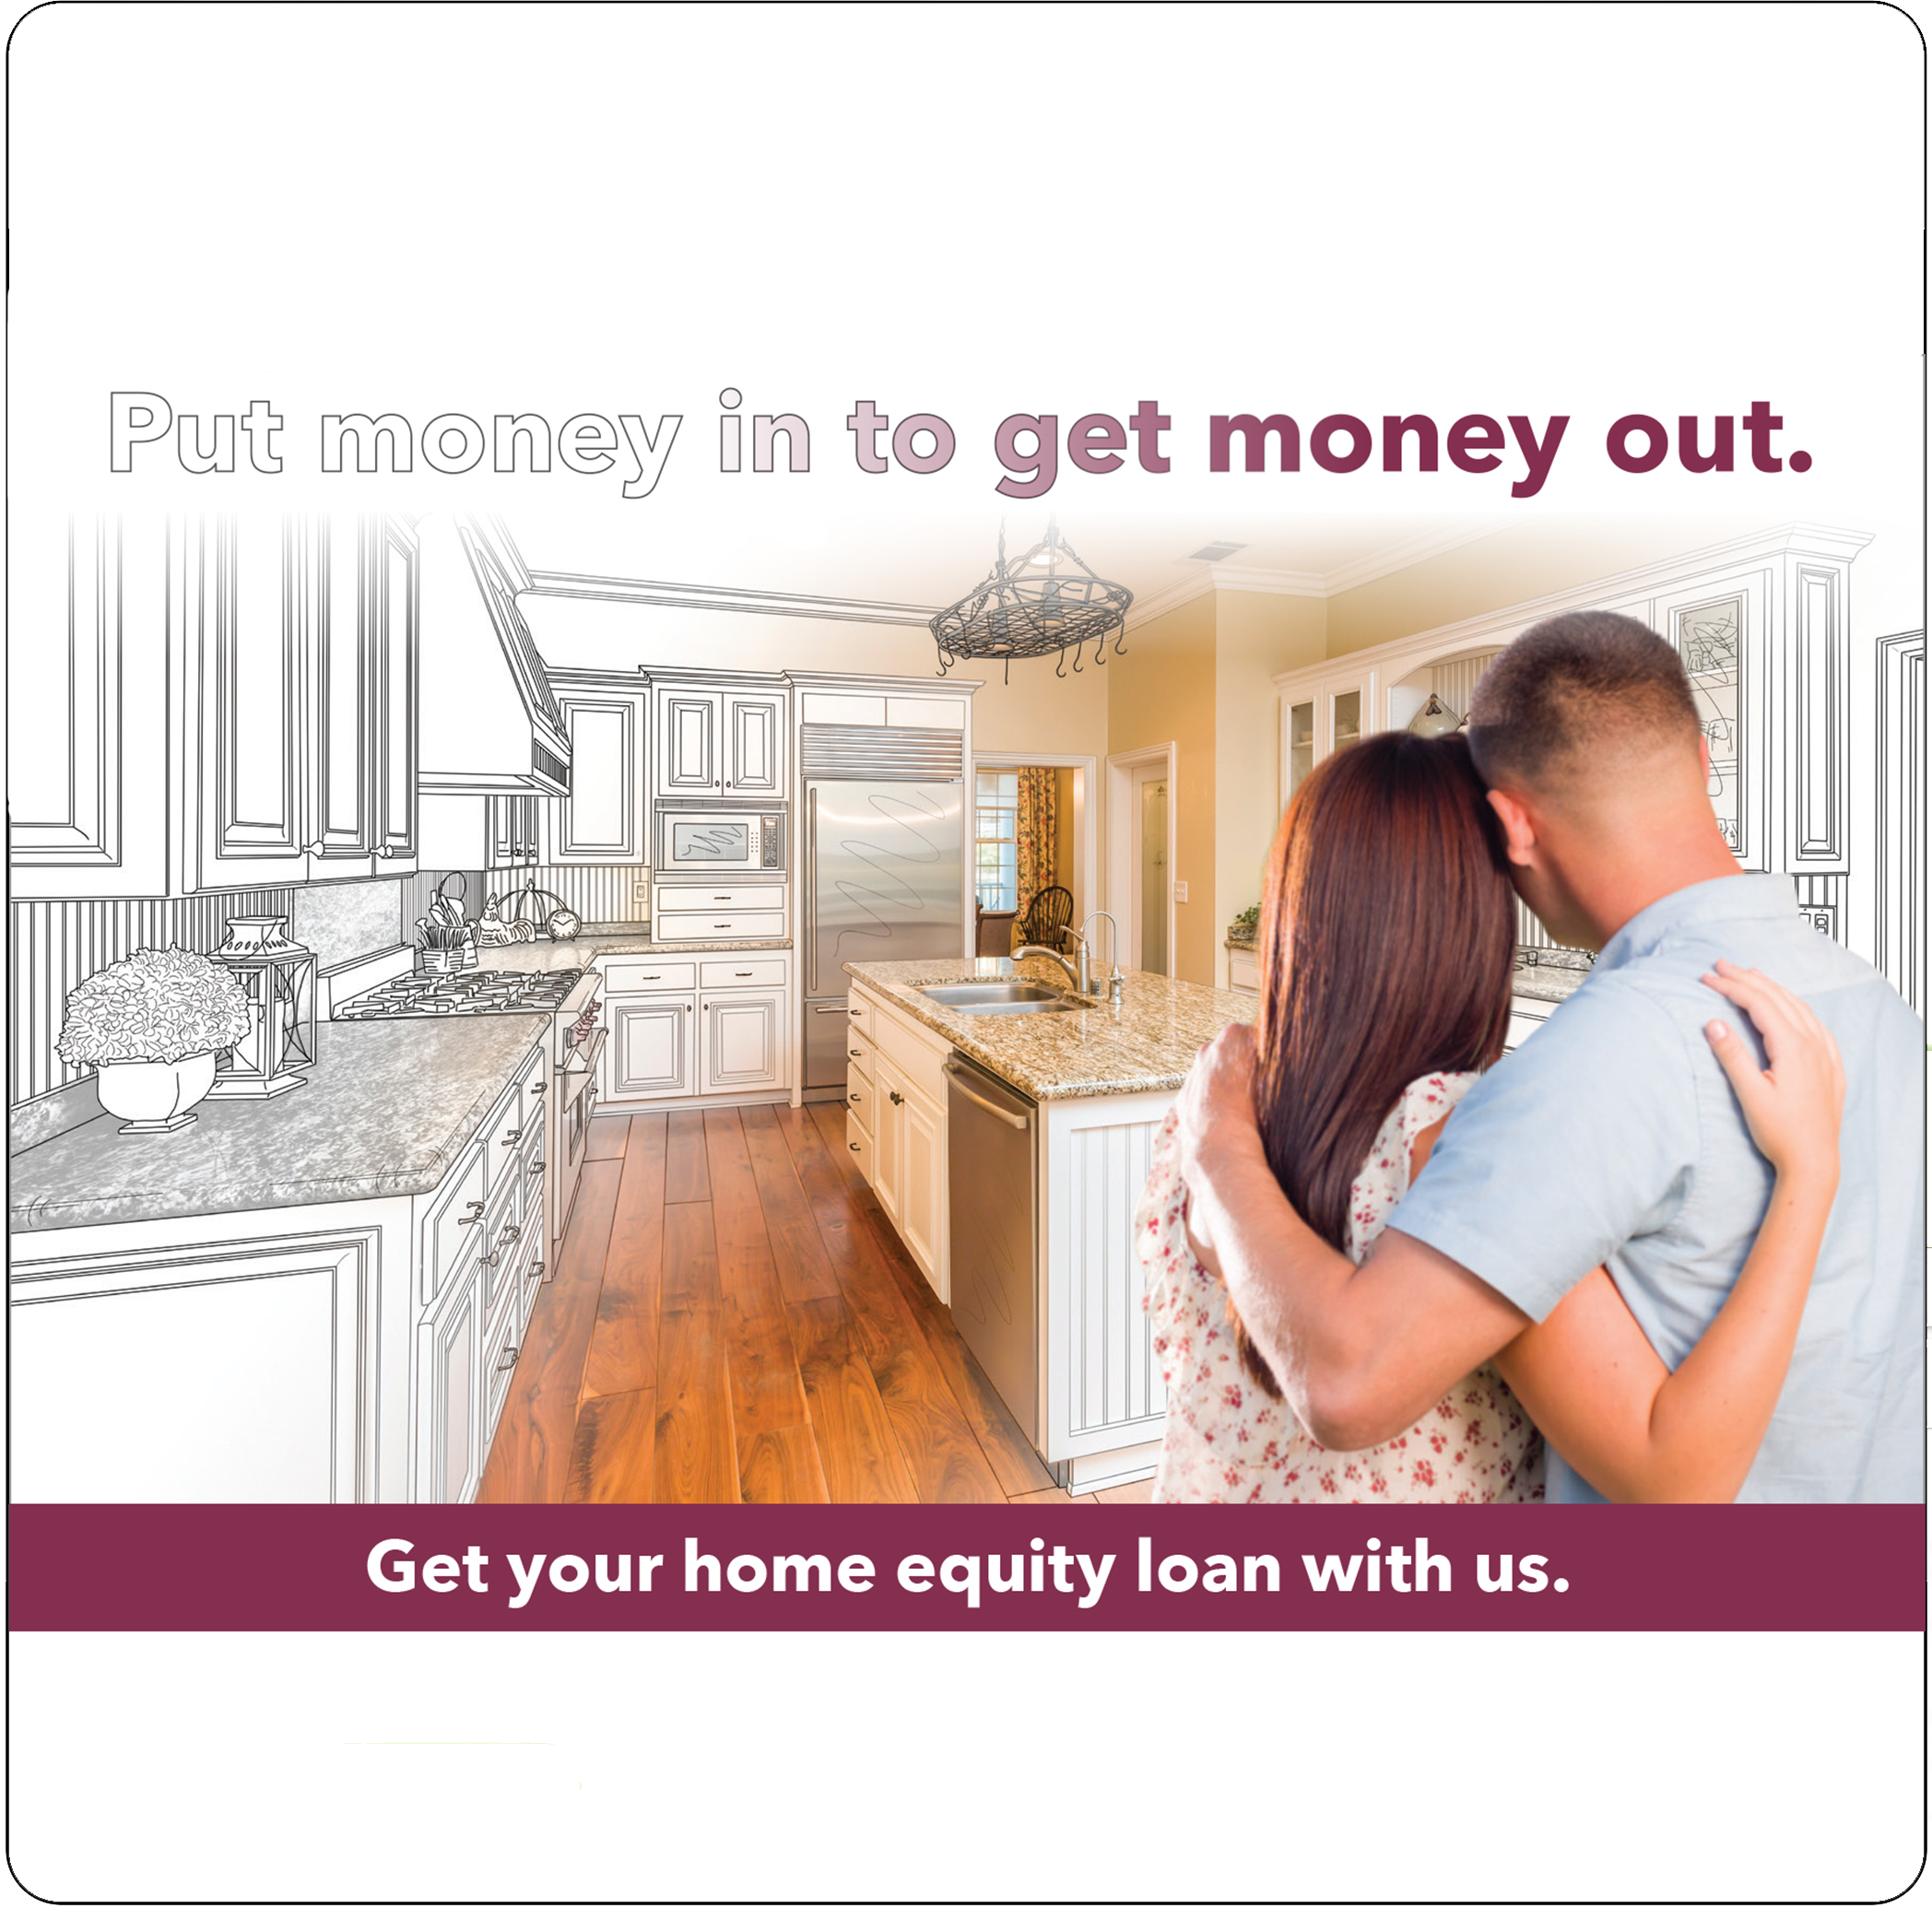 Home equity line of credit loan